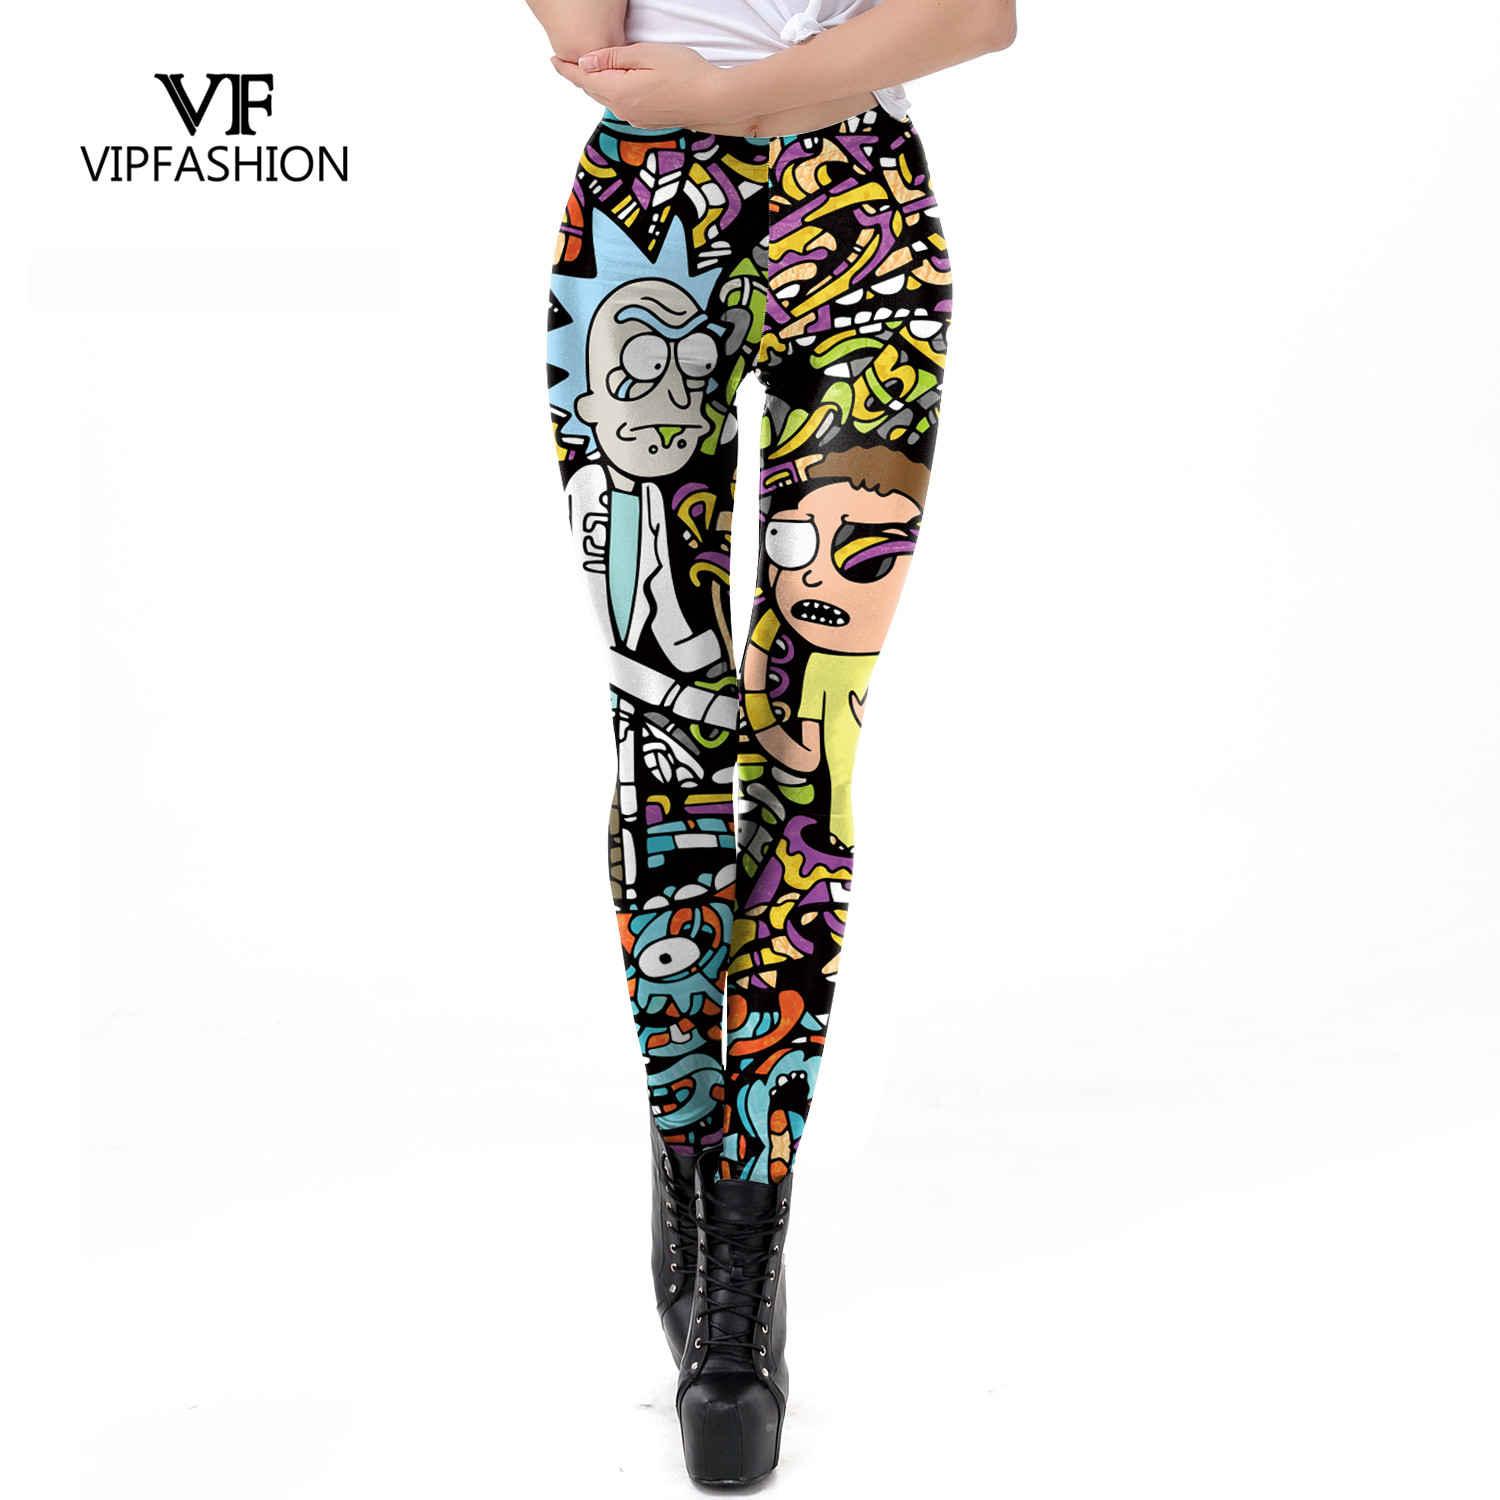 VIP FASHION 2019 New Body Building Pants Women Rick And Morty Printed Leggings Workout Cartoon Leggin 1